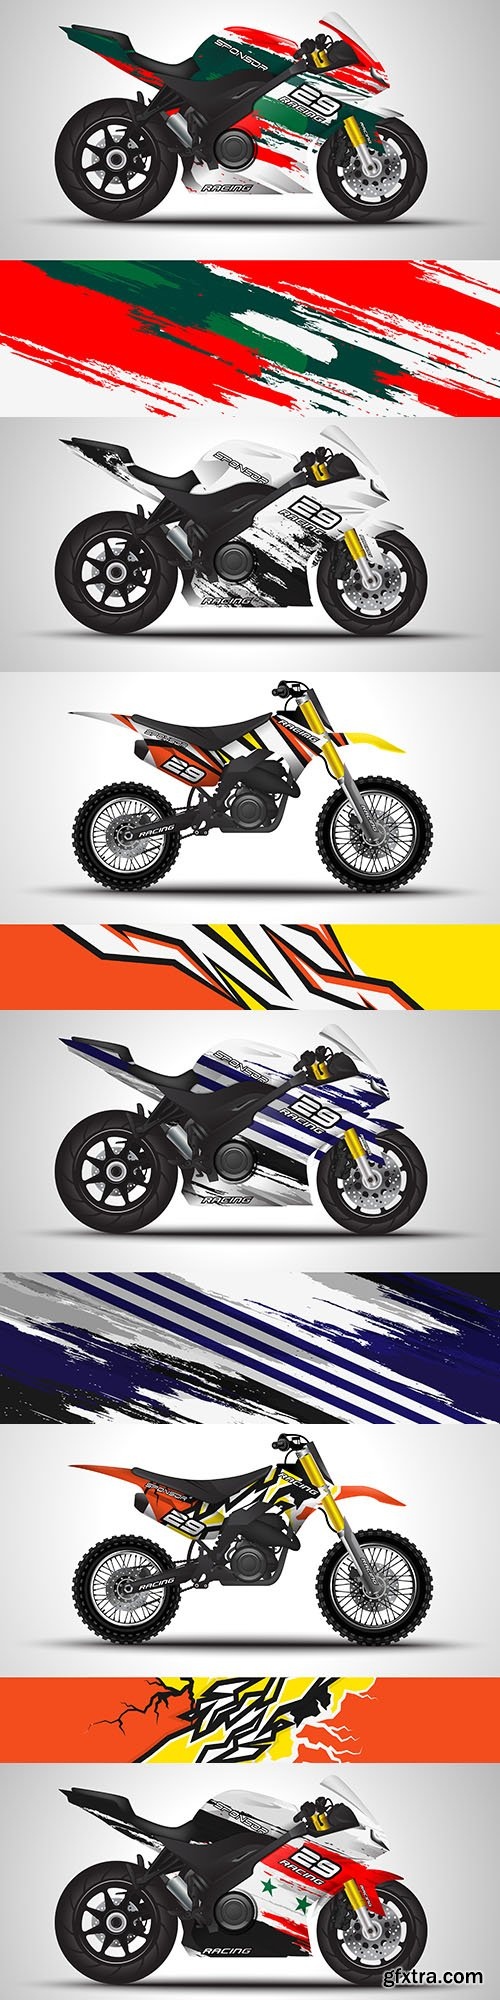 Motorcycle sticker and vinyl sticker design illustration